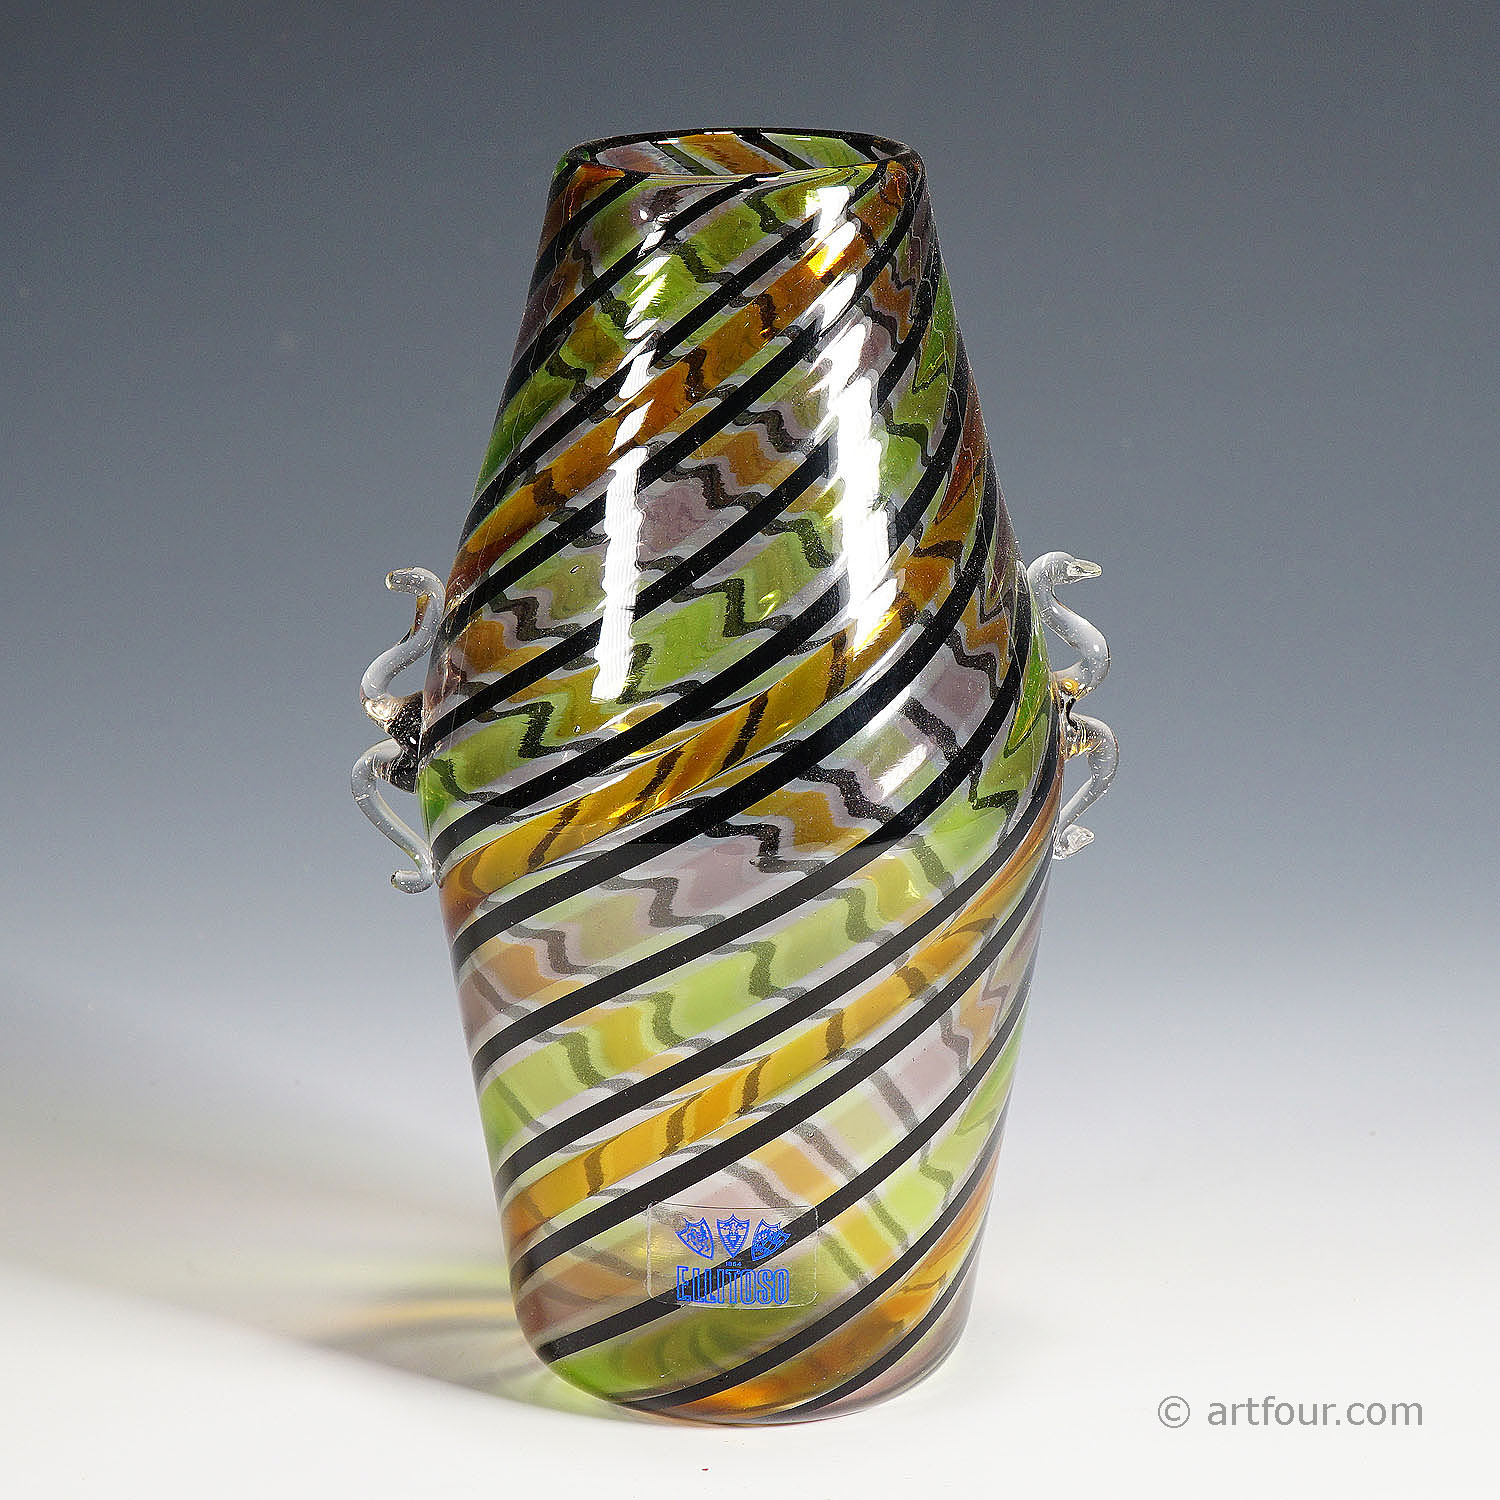 fratelli toso 'a canne' glass vase with handles, murano, italy ca. 1965